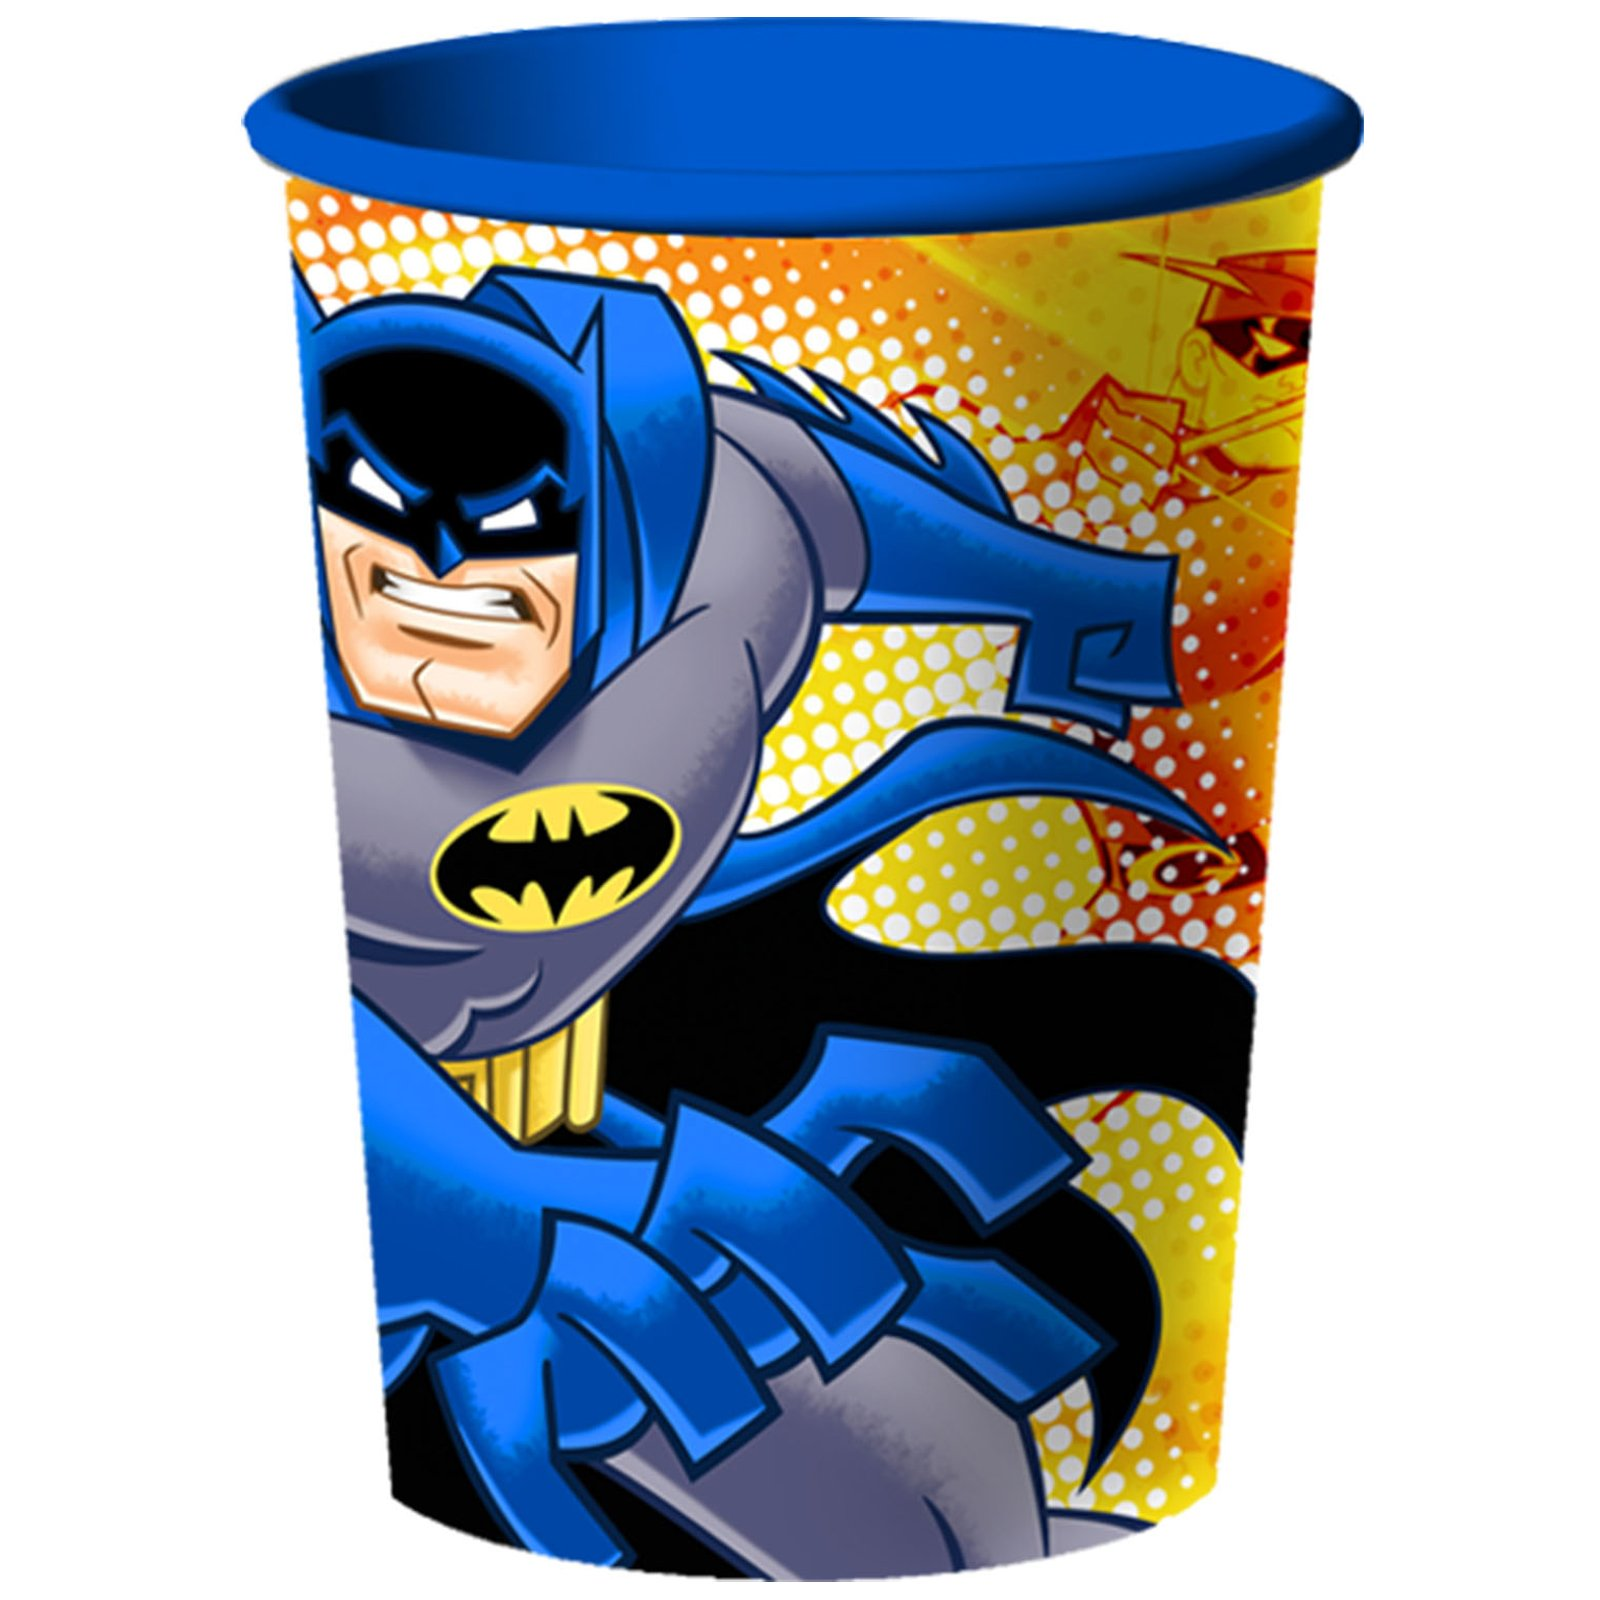 Batman Brave and Bold 16 oz. Plastic Cup (1 count)